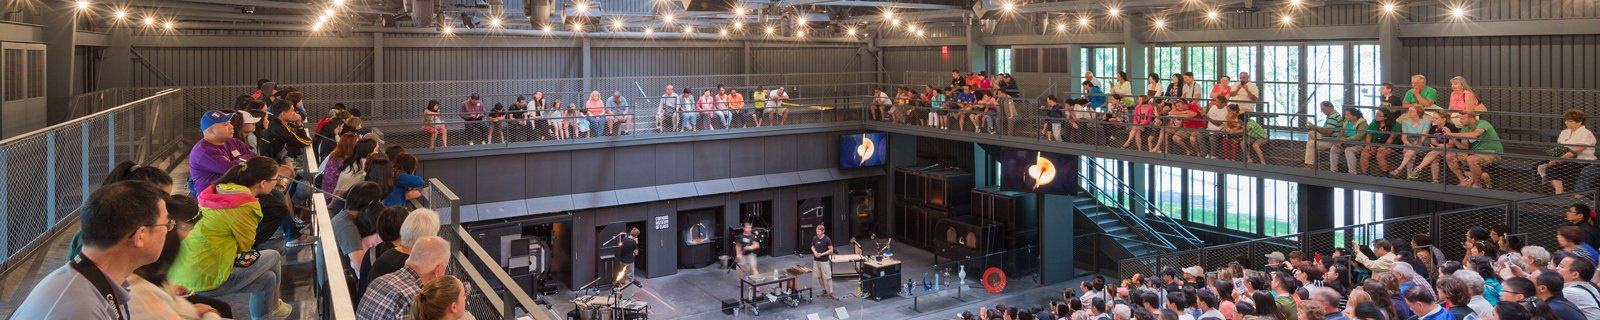 All exhibits & glassmaking demos are included in admission (extra to Make Your Own Glass).